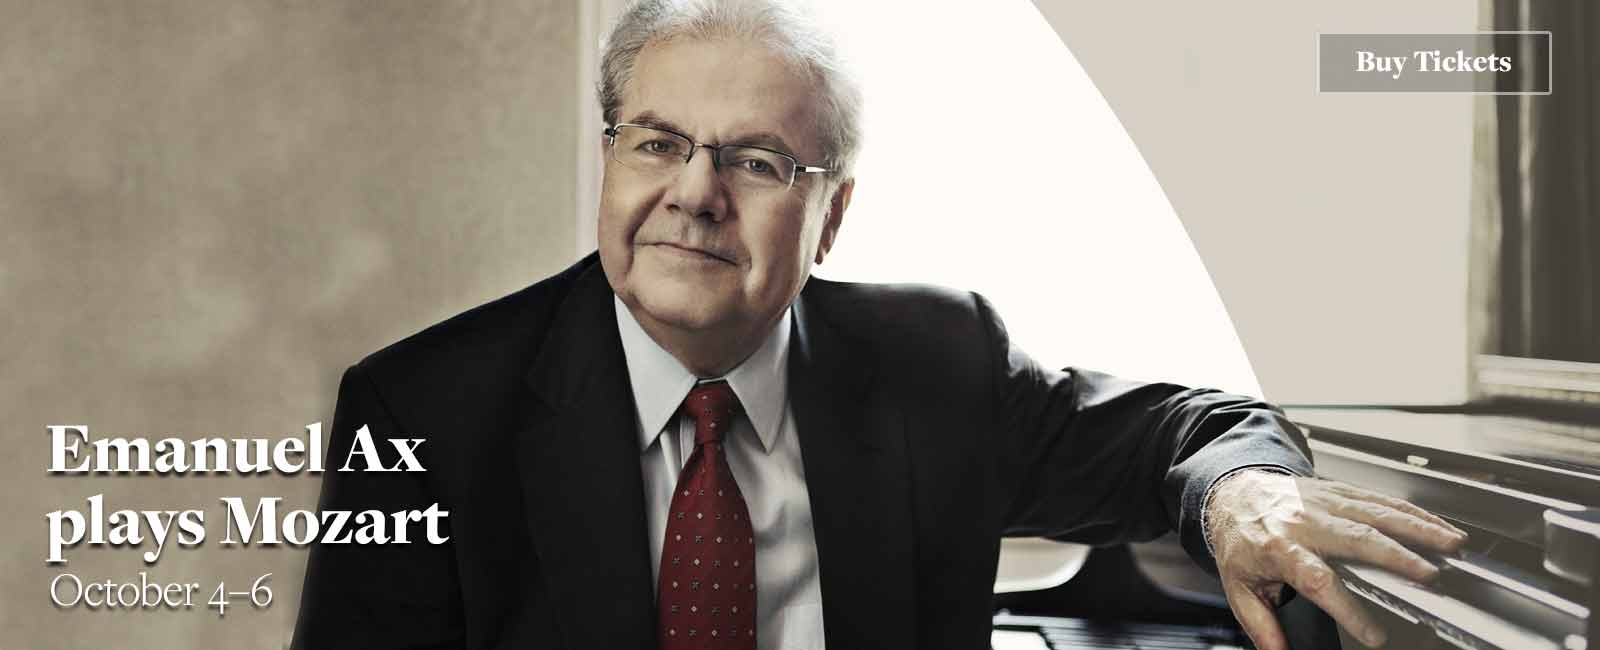 Emanuel Ax plays Mozart